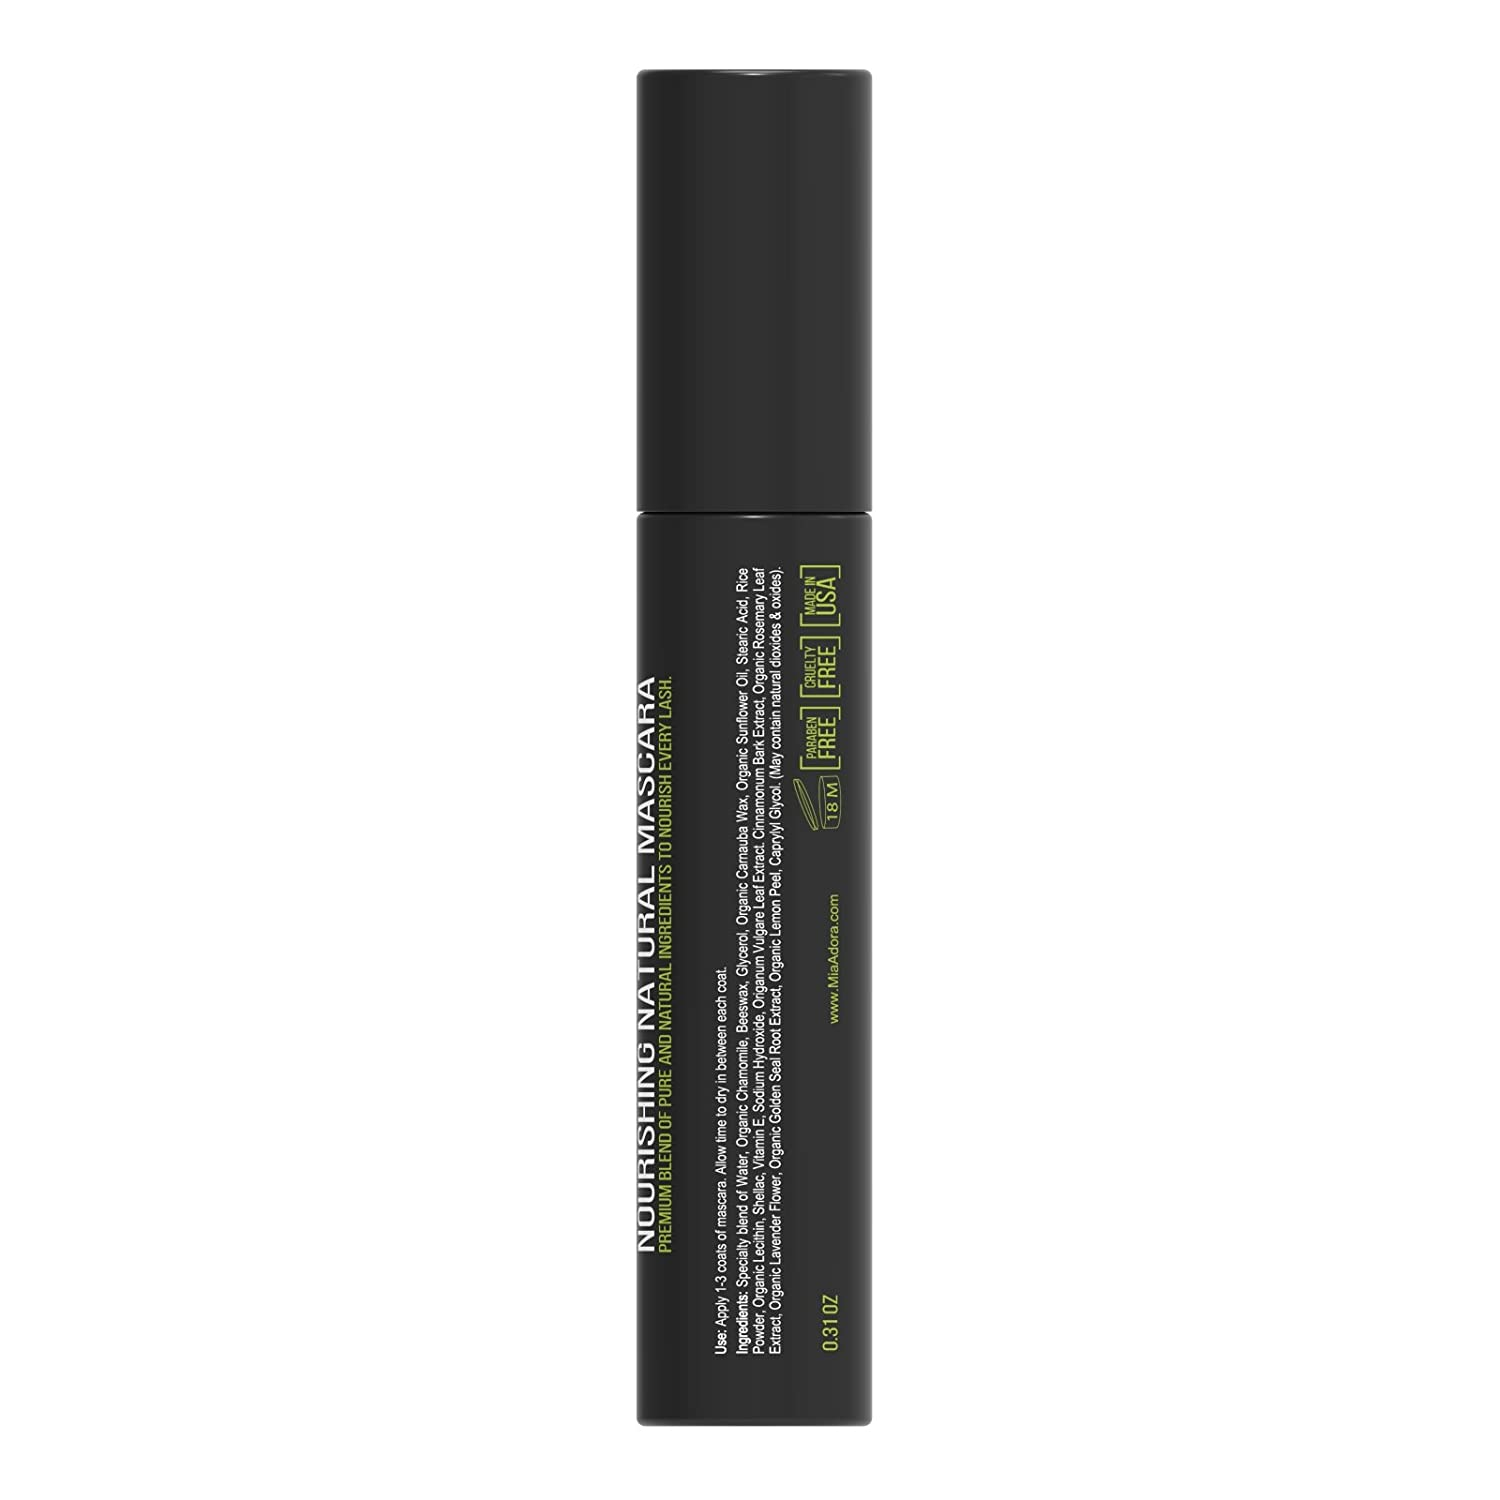 589d51807fe Amazon.com : Best Organic Mascara - Black Natural Mascara Ingredients for  Longer Lashes - Hypoallergenic Non-Toxic for Sensitive Eyes- Enriched  Vitamin E ...